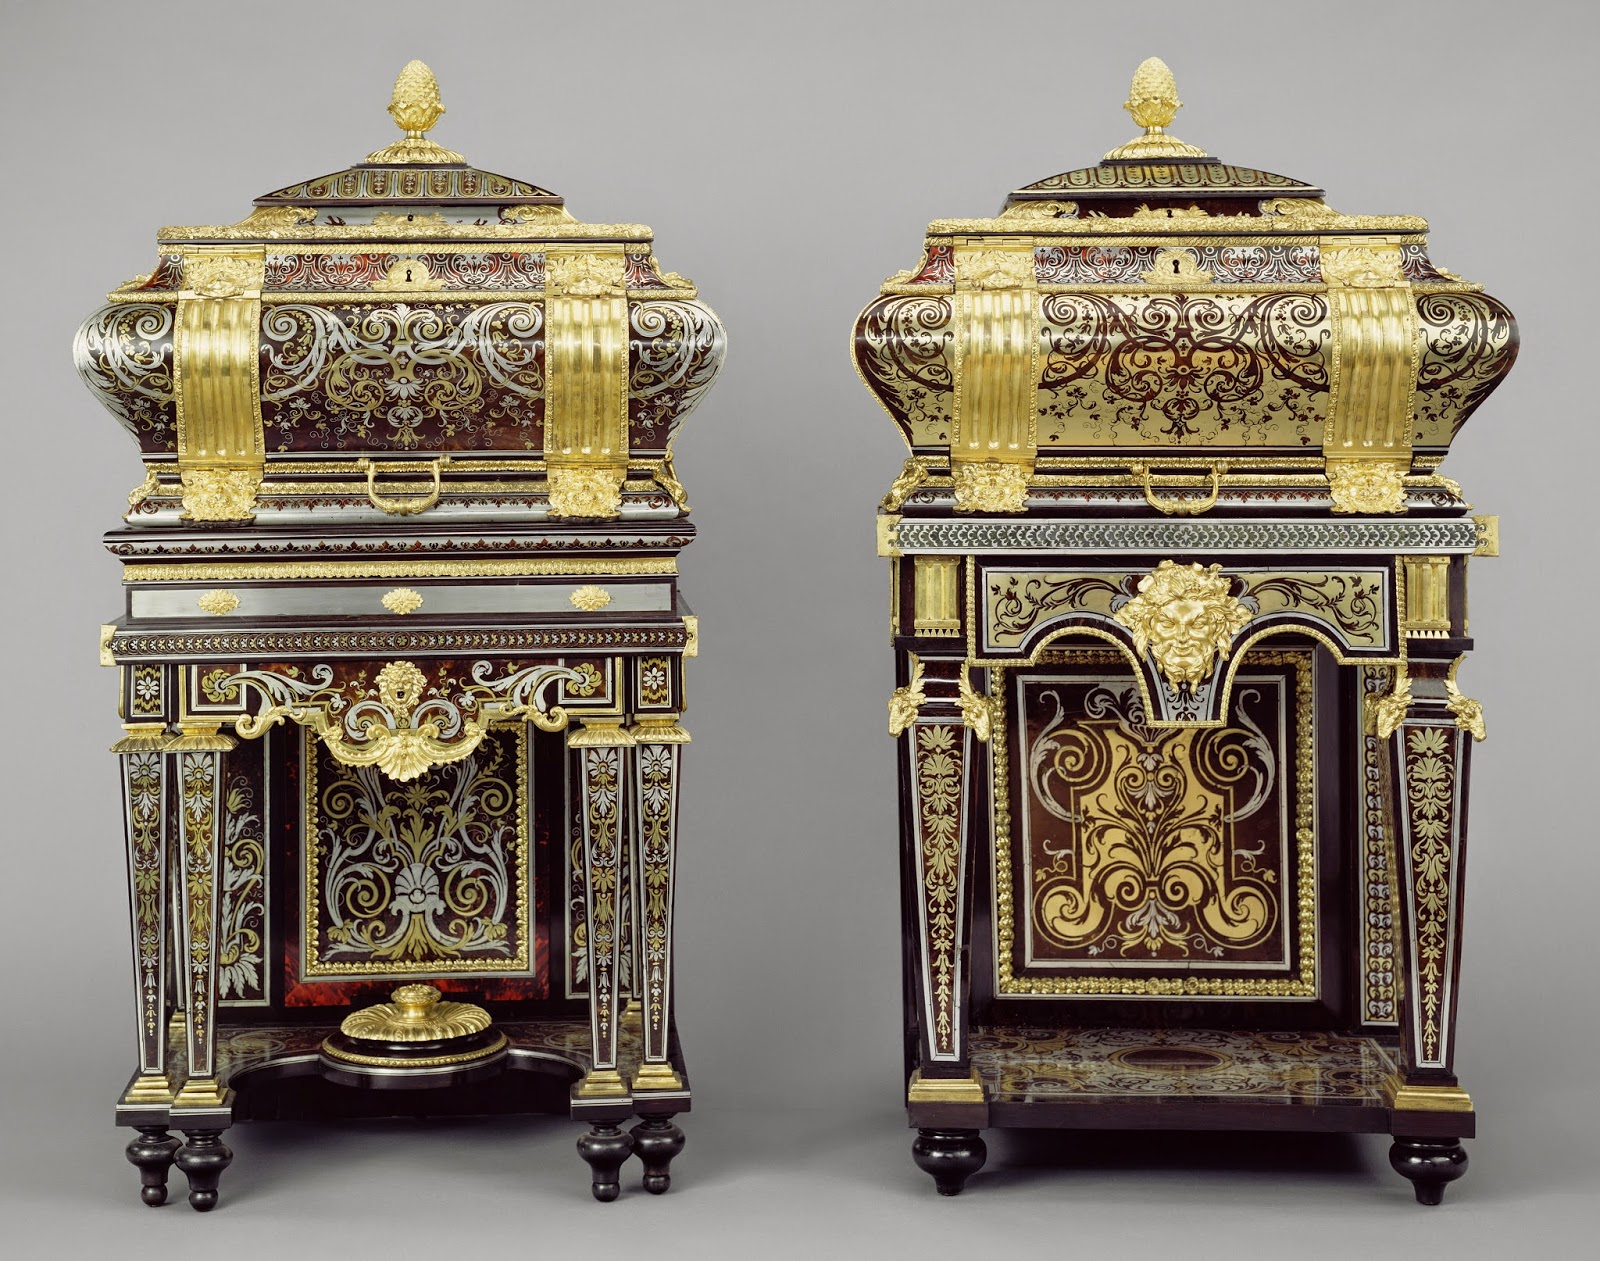 Two Coffers on Stands, Attributed to André-Charles Boulle, about 1684 - 1689, Oak, cypress, and walnut veneered with tortoise shell, blue-painted horn, ebony, padouk, rosewood, pewter, and brass; gilt-bronze mounts; mirror glass